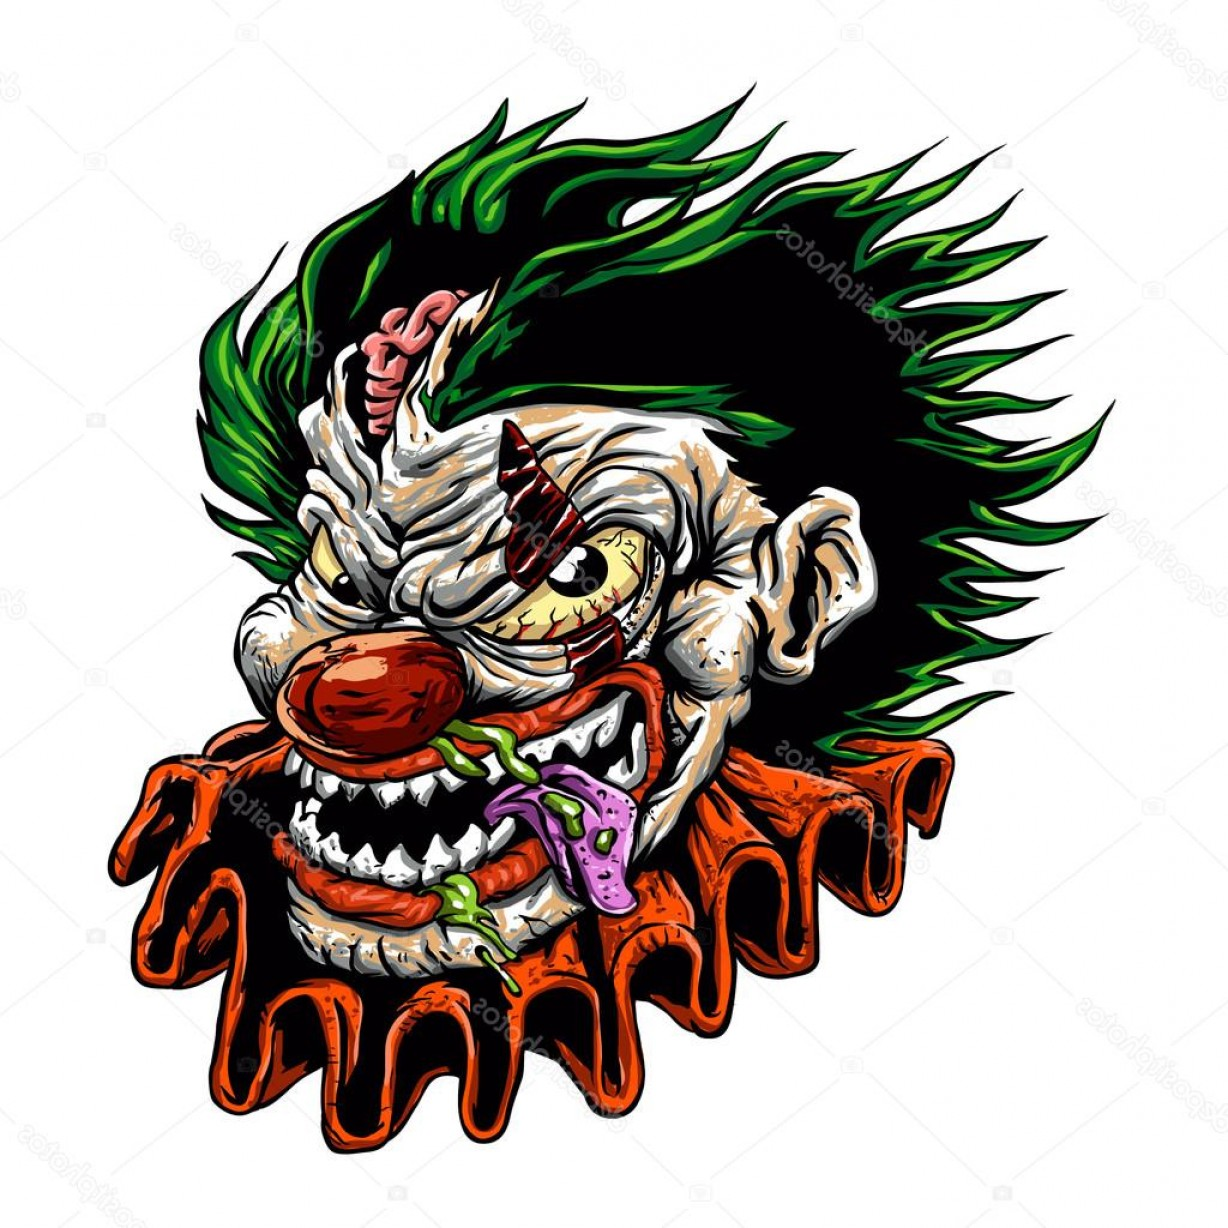 Creepy Clown Vector: Stock Illustration Zombie Evil Clown Vector Illustration